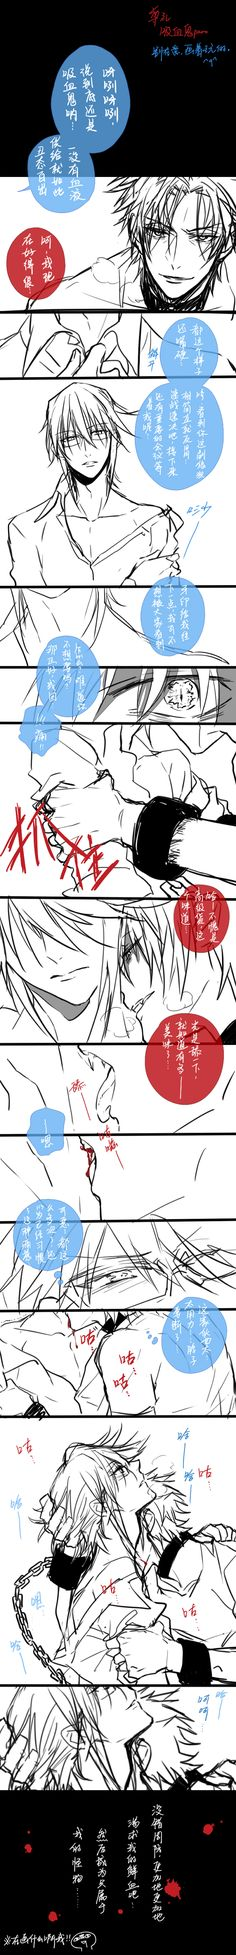 You are my personal madness, Suoh Mikoto. And so it seems only fair that I am your madness too. I love you.